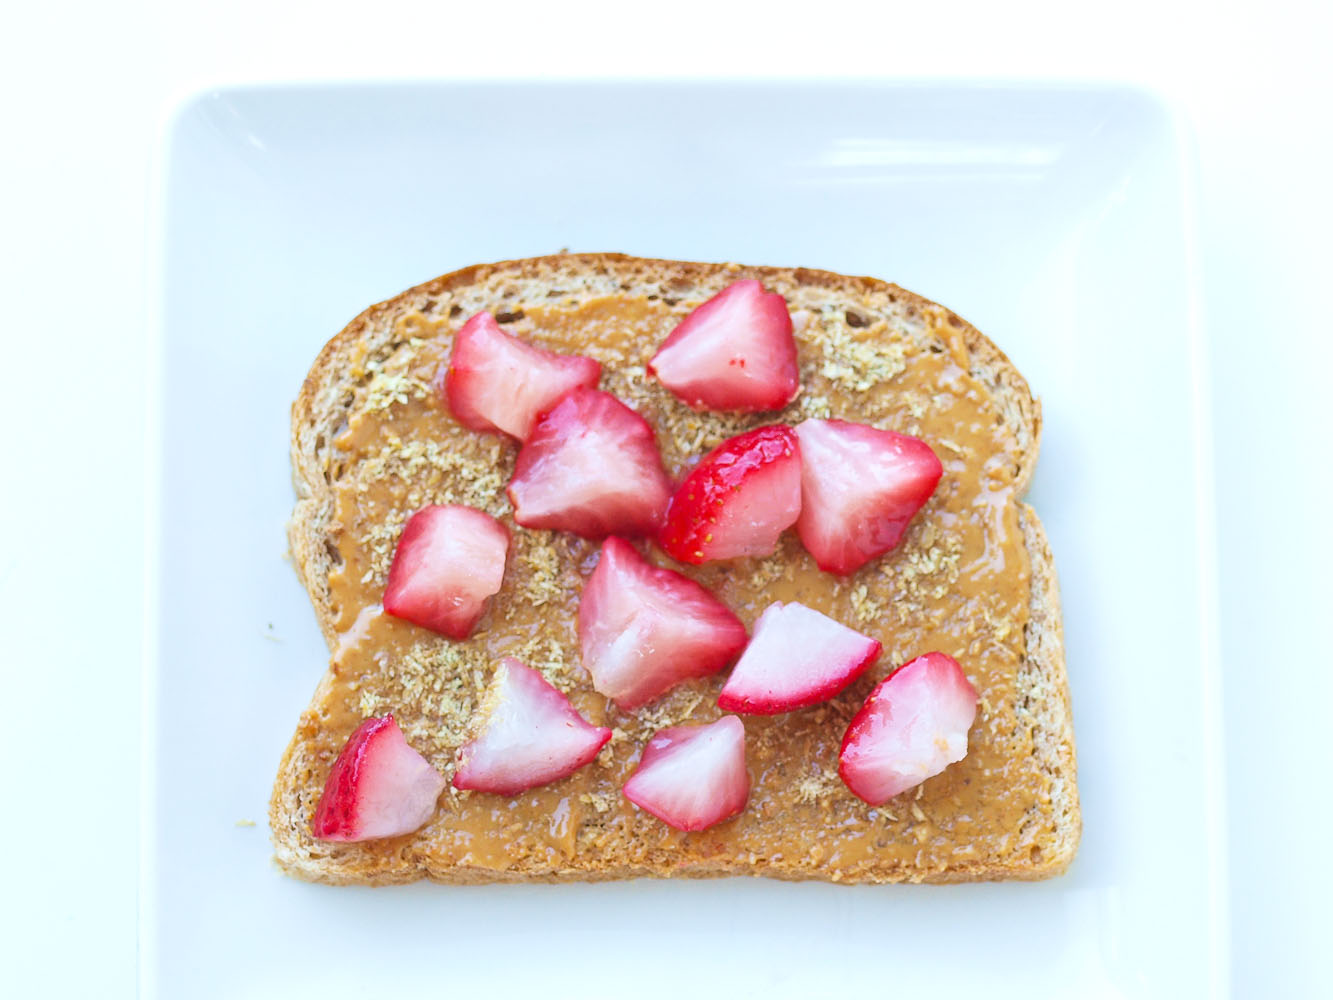 can you lose weight by just eating peanut butter and jelly sandwiches